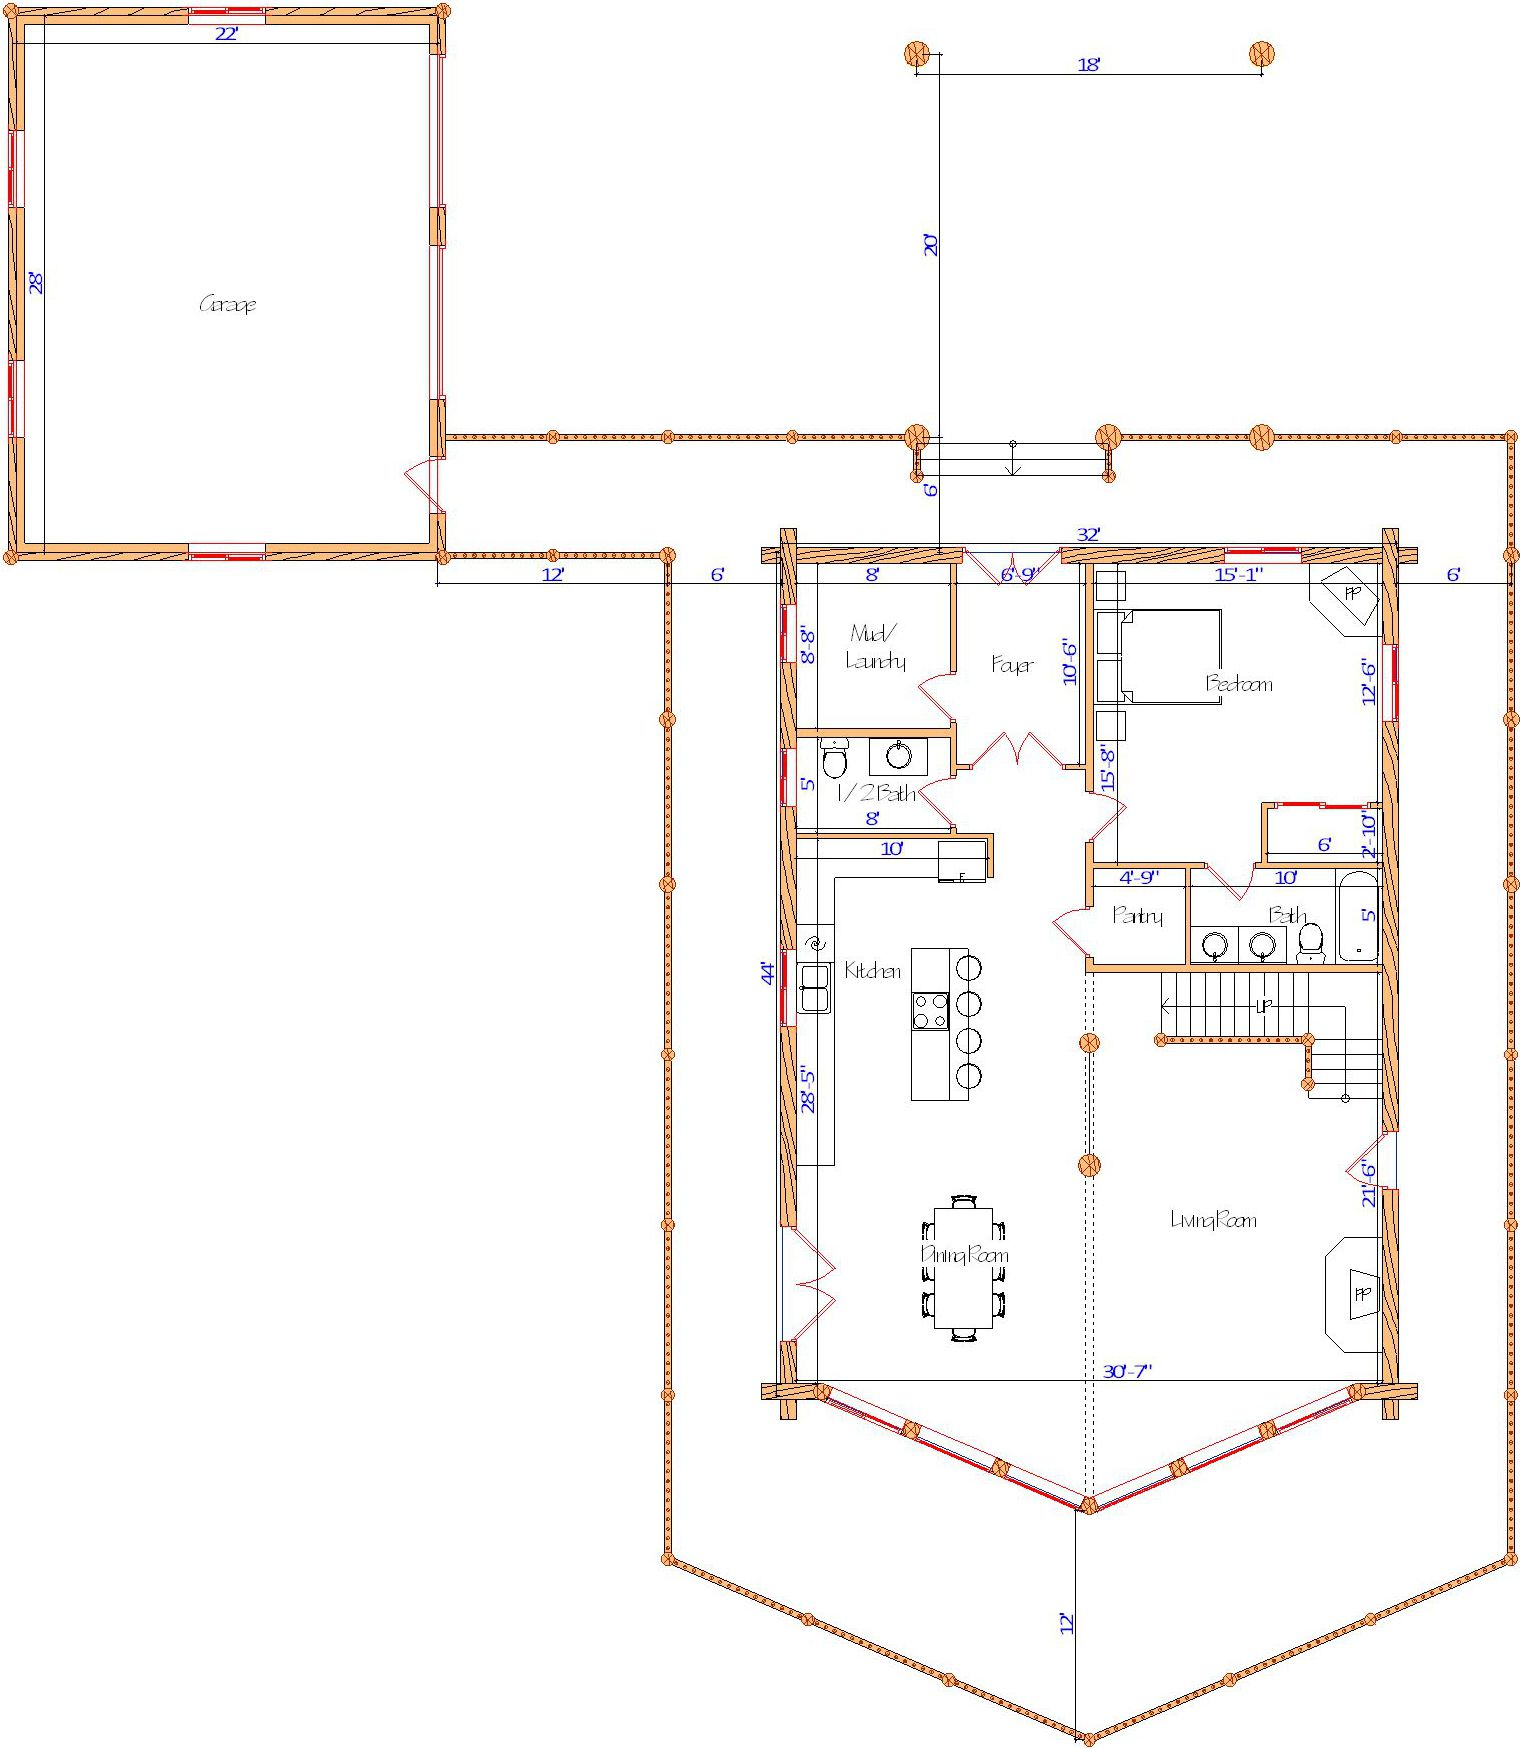 32x44 Yellowstone Main floor plan layout tennessee log home design